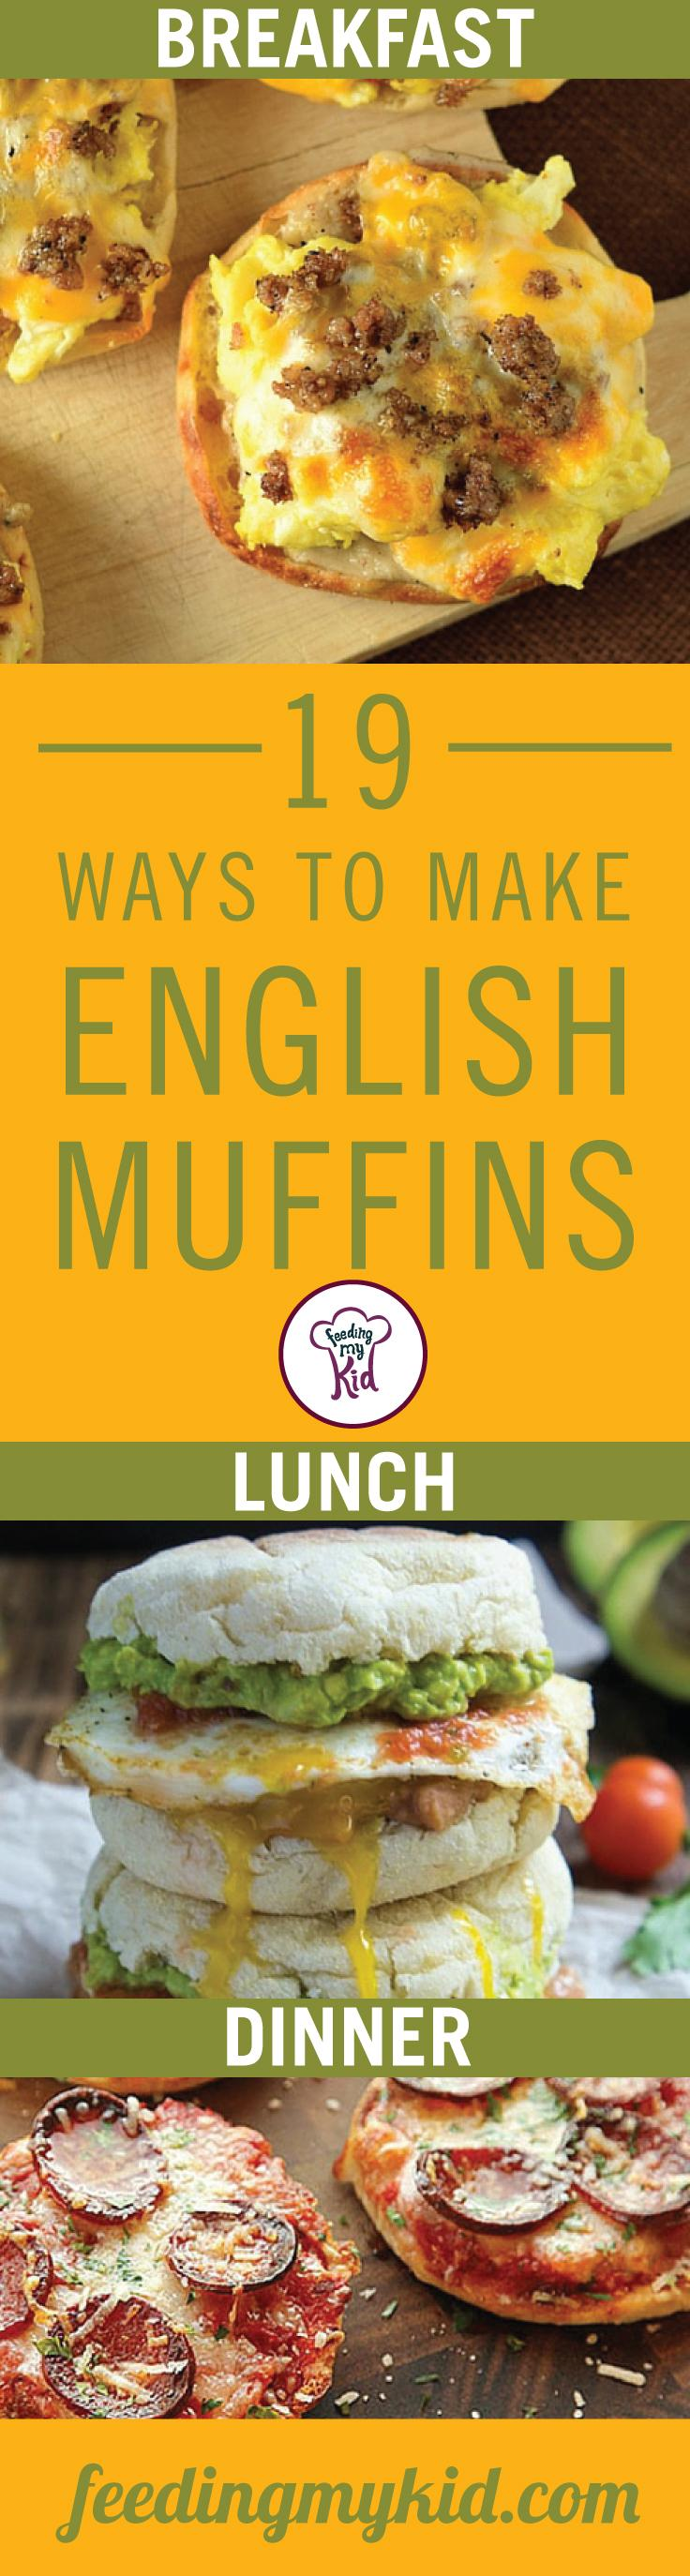 Find the perfect english muffin recipe. From a pizza english muffin to a dill pickle sandwich, these recipes are perfect for anyone and anytime. Feeding My Kid is a great website for parents and nutrition buffs alike, filled with healthy recipes and ways to live a nutritious, healthy life.